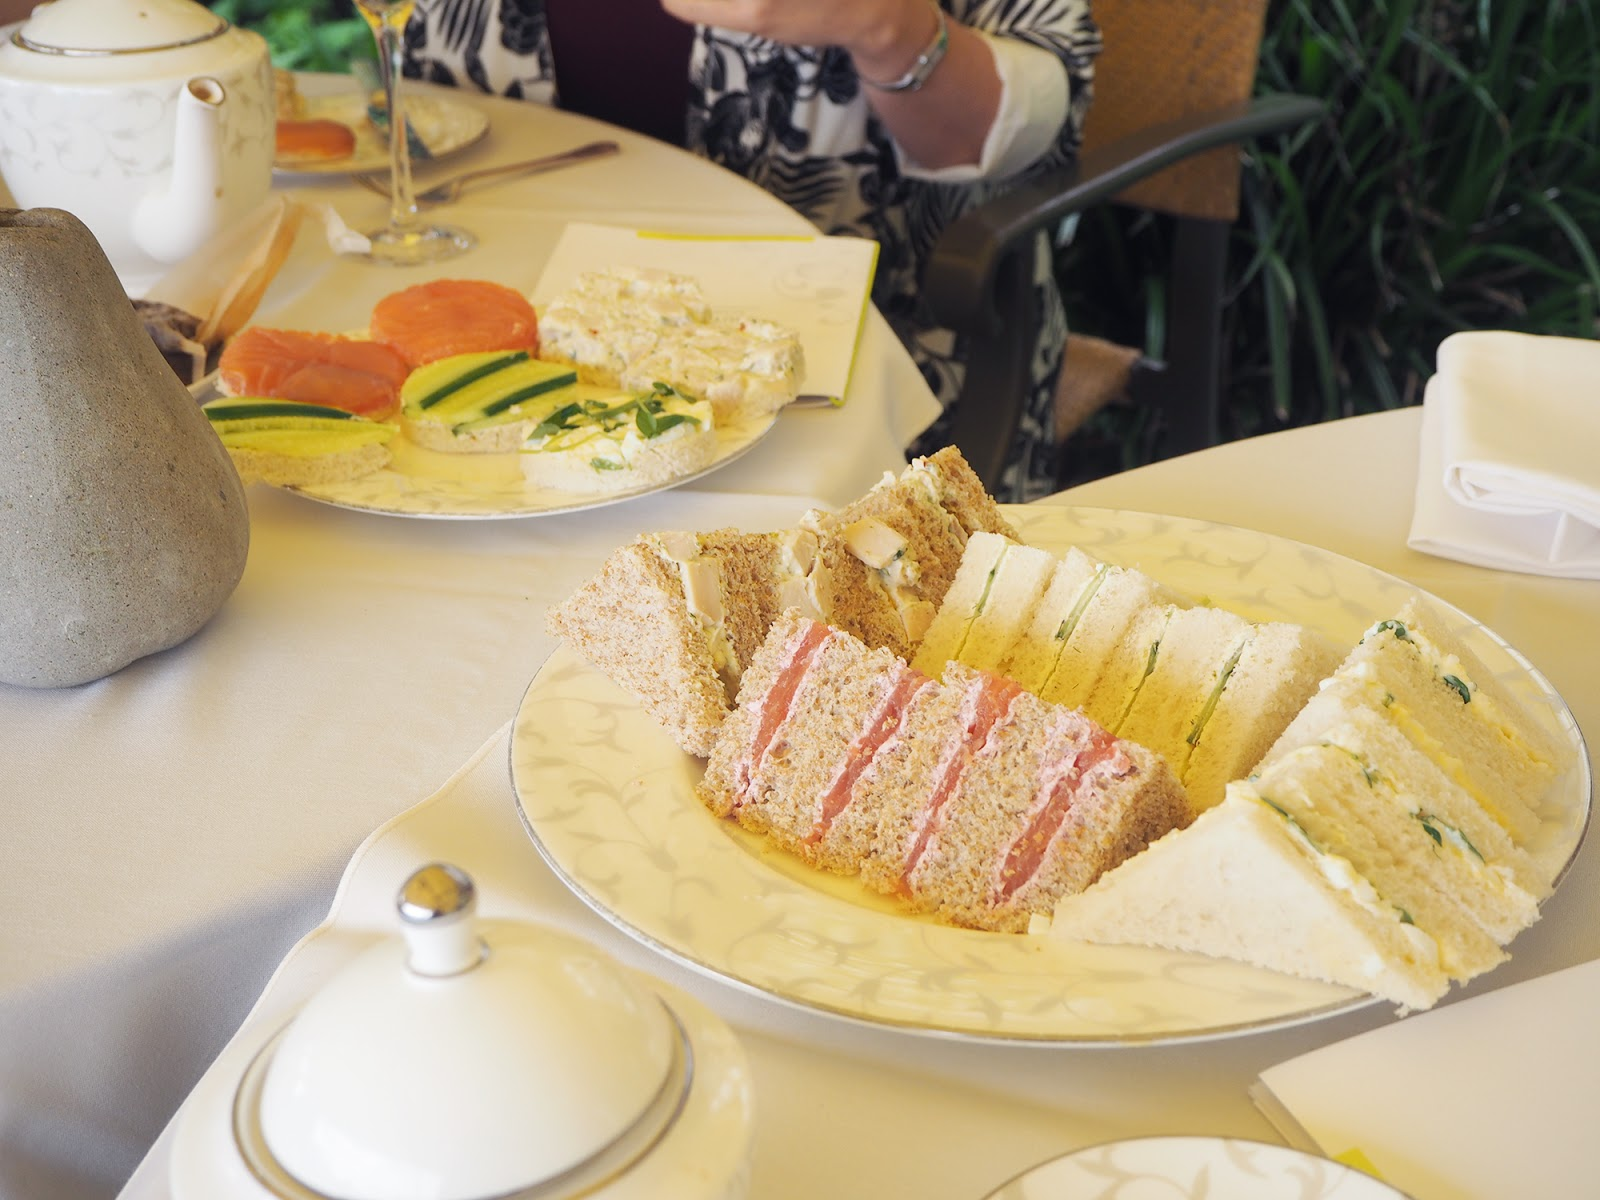 Afternoon tea review at South Lodge in Horsham - sandwiches